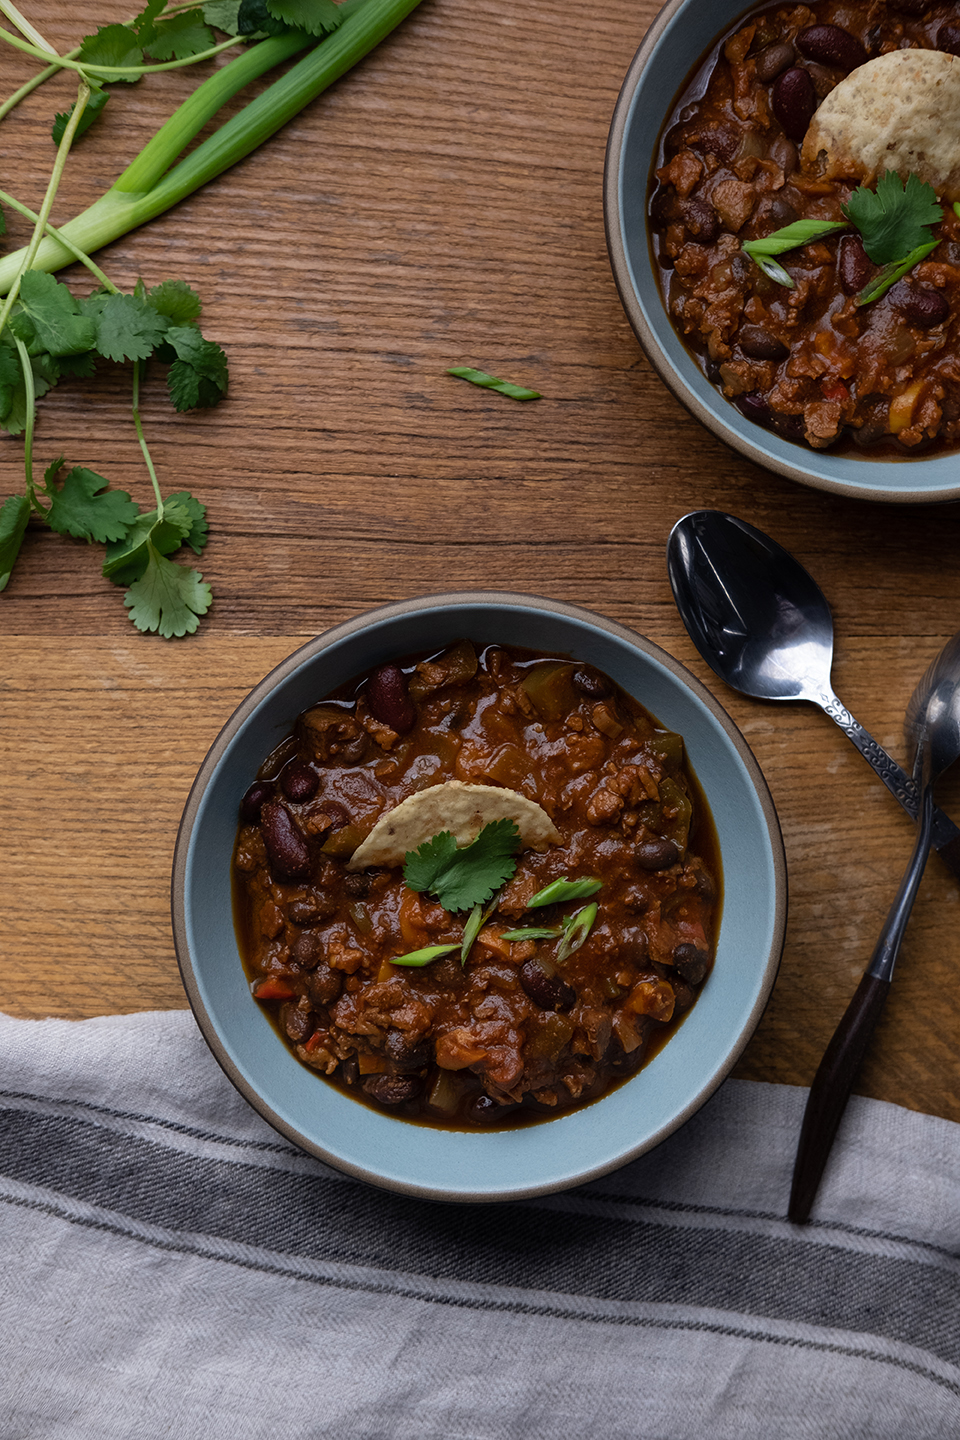 bowls of vegetarian chili on a rustic wooden table